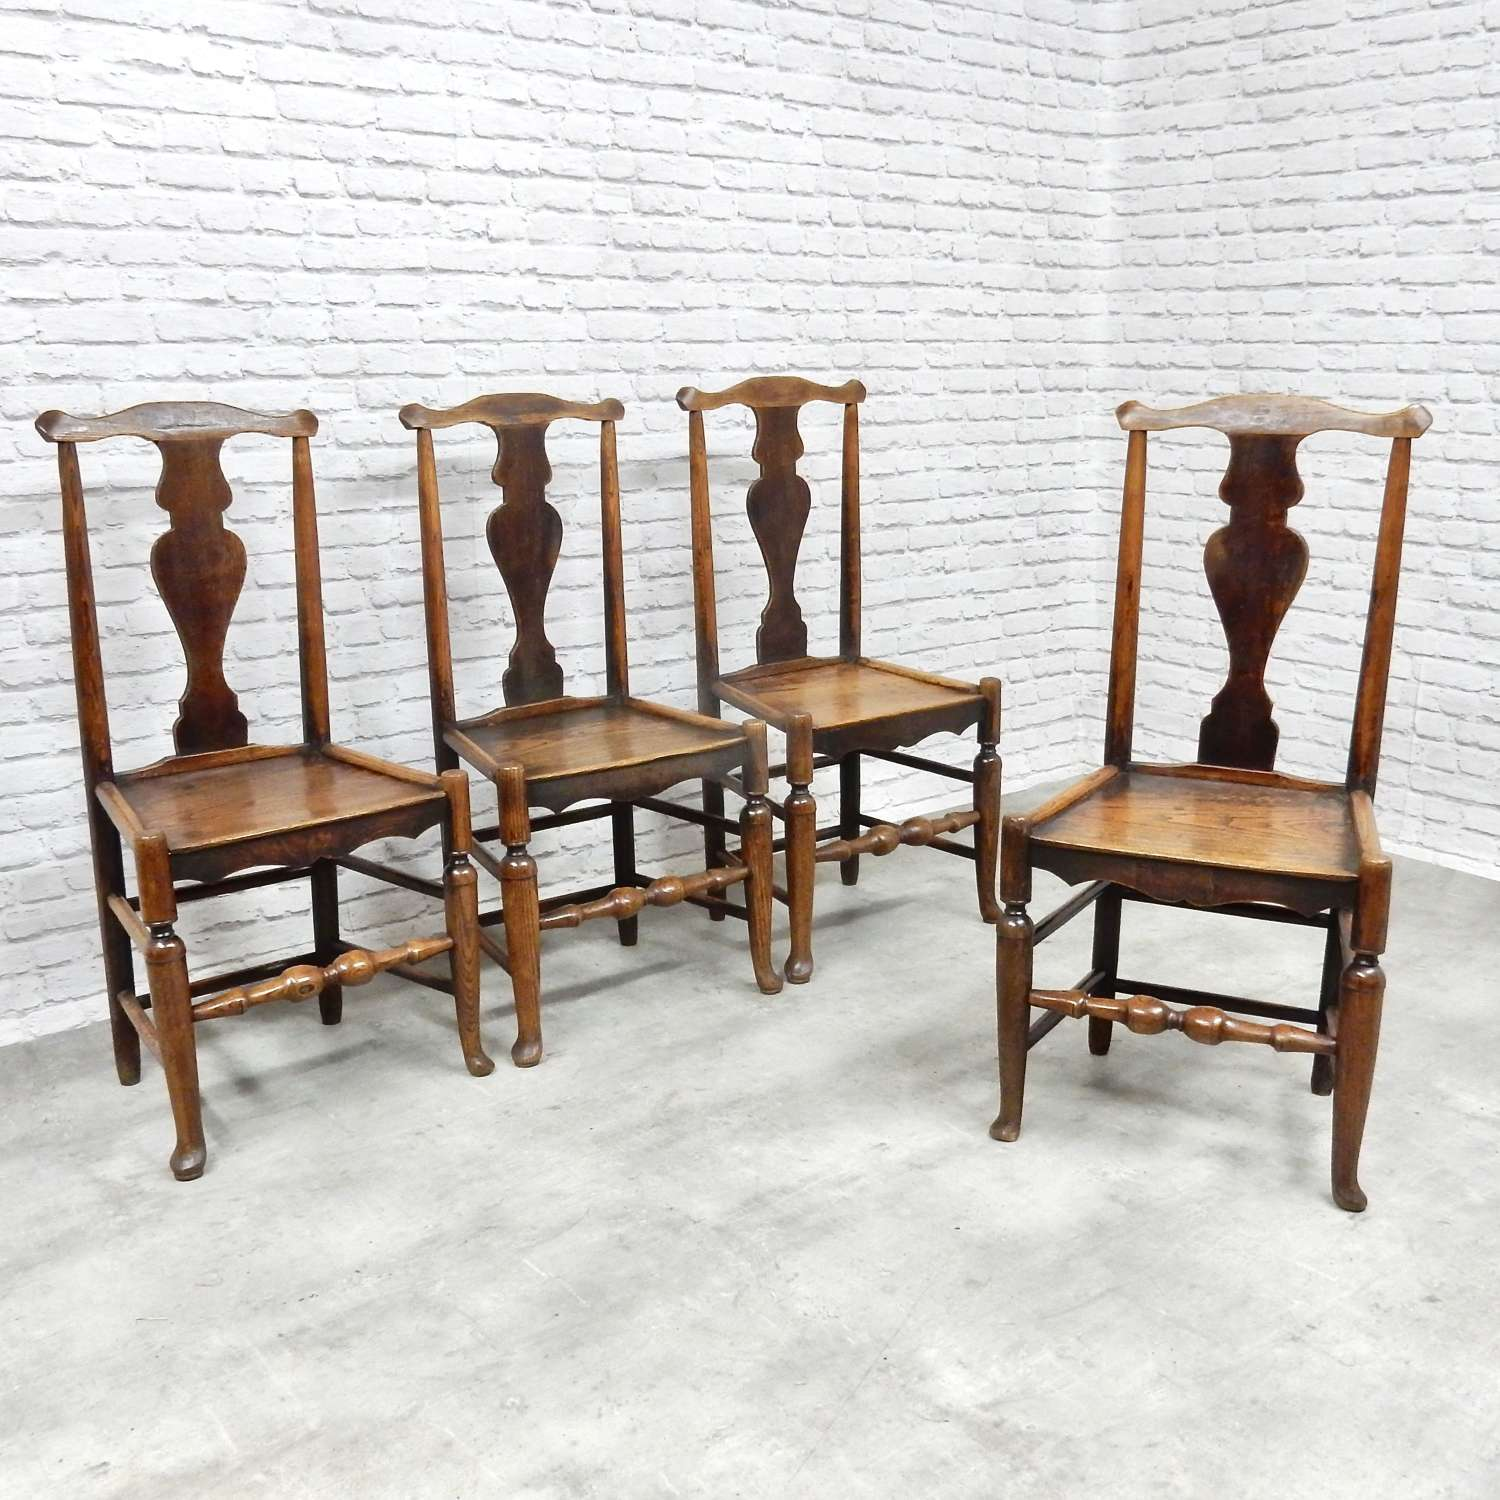 Early C19th Country Dining Chairs